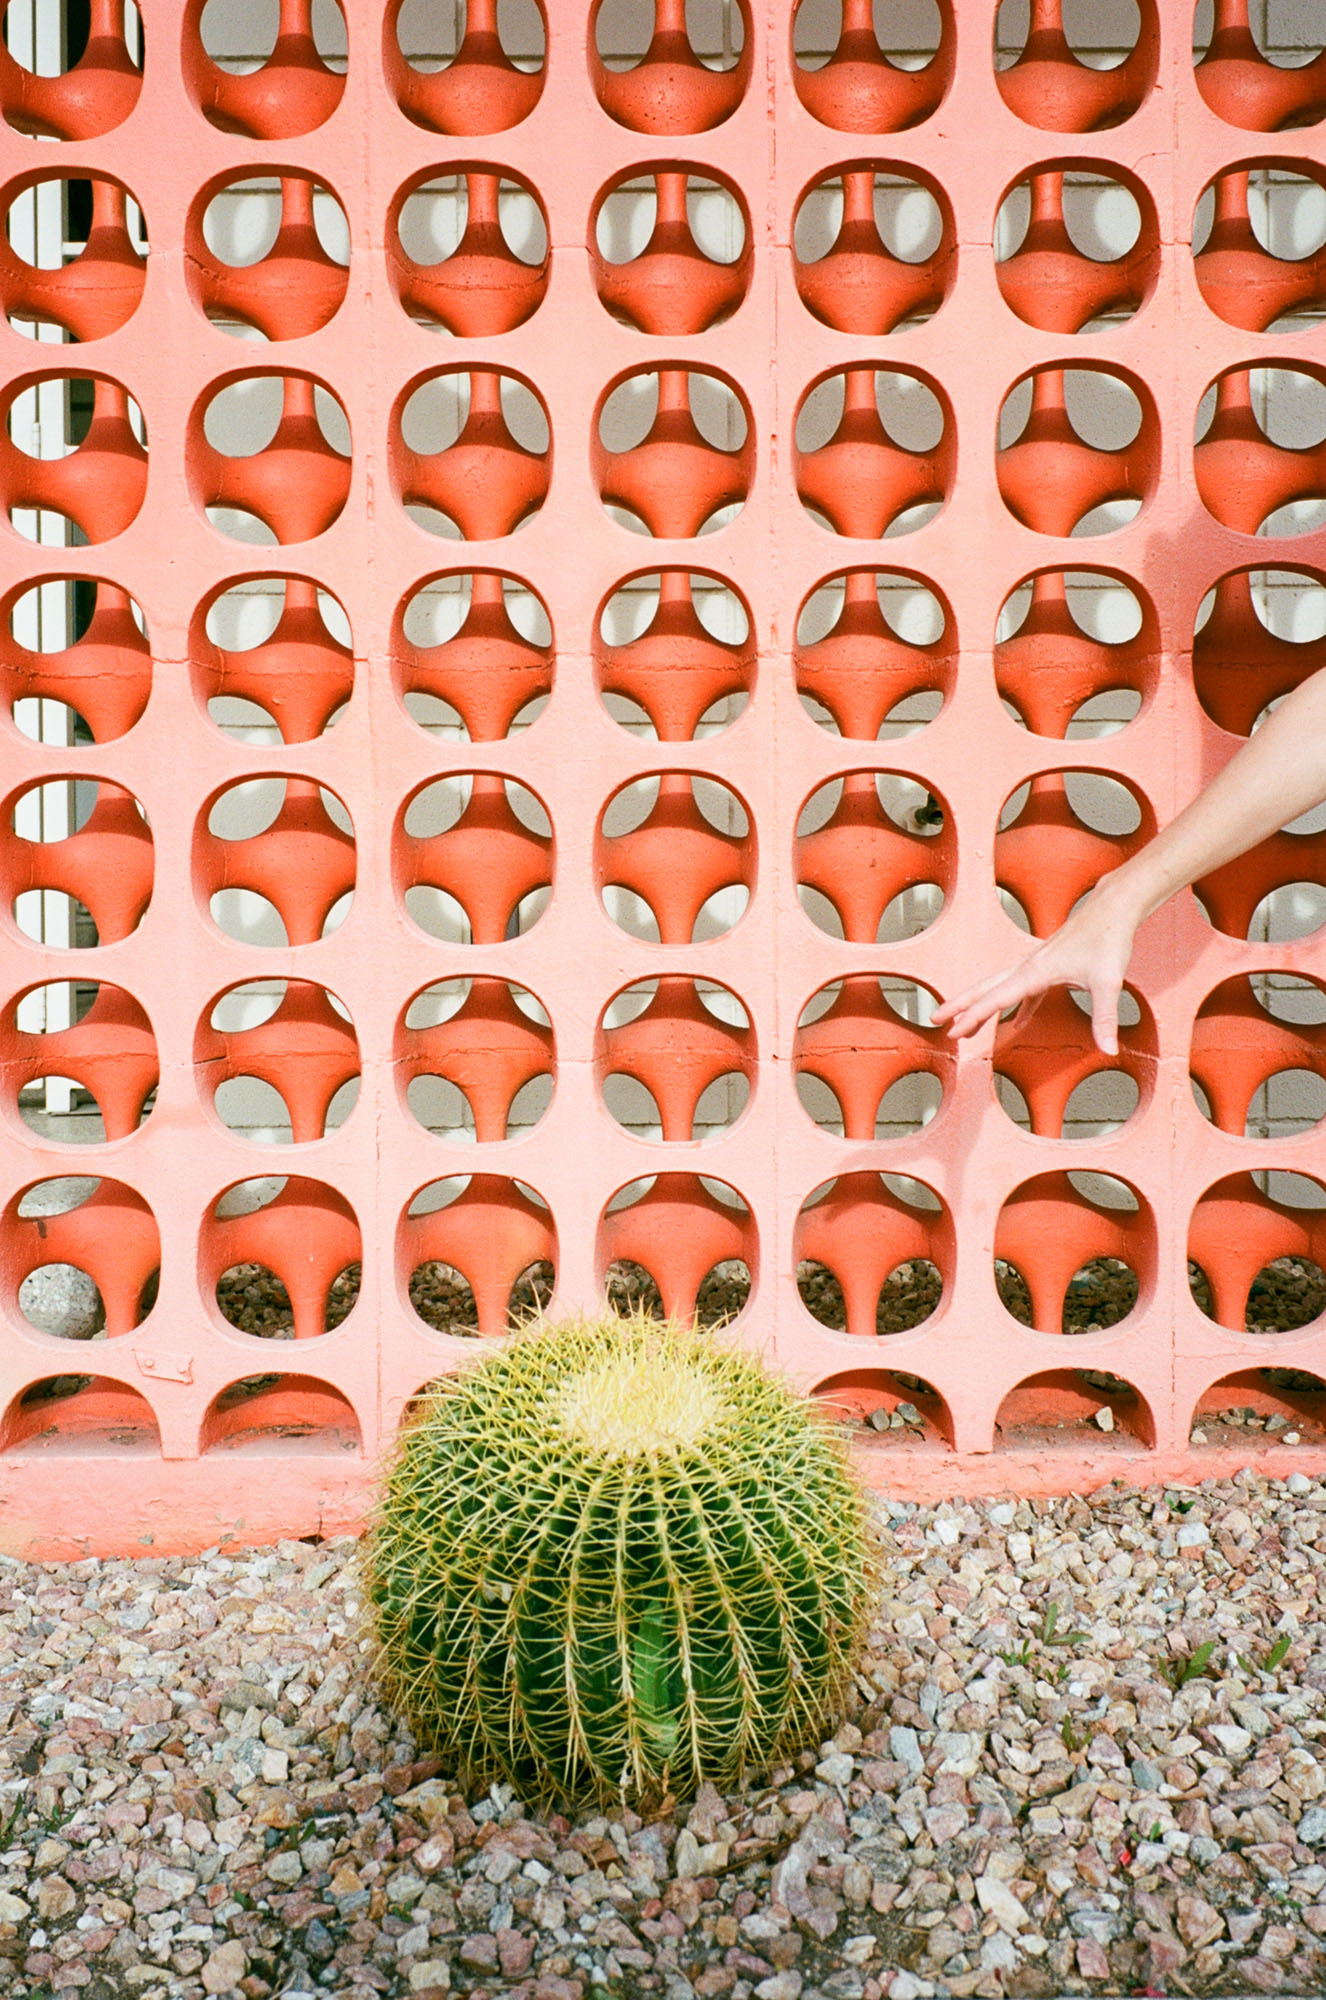 orange-wall-cactus-palm-springs-california-film-photography-travel-photographer-006